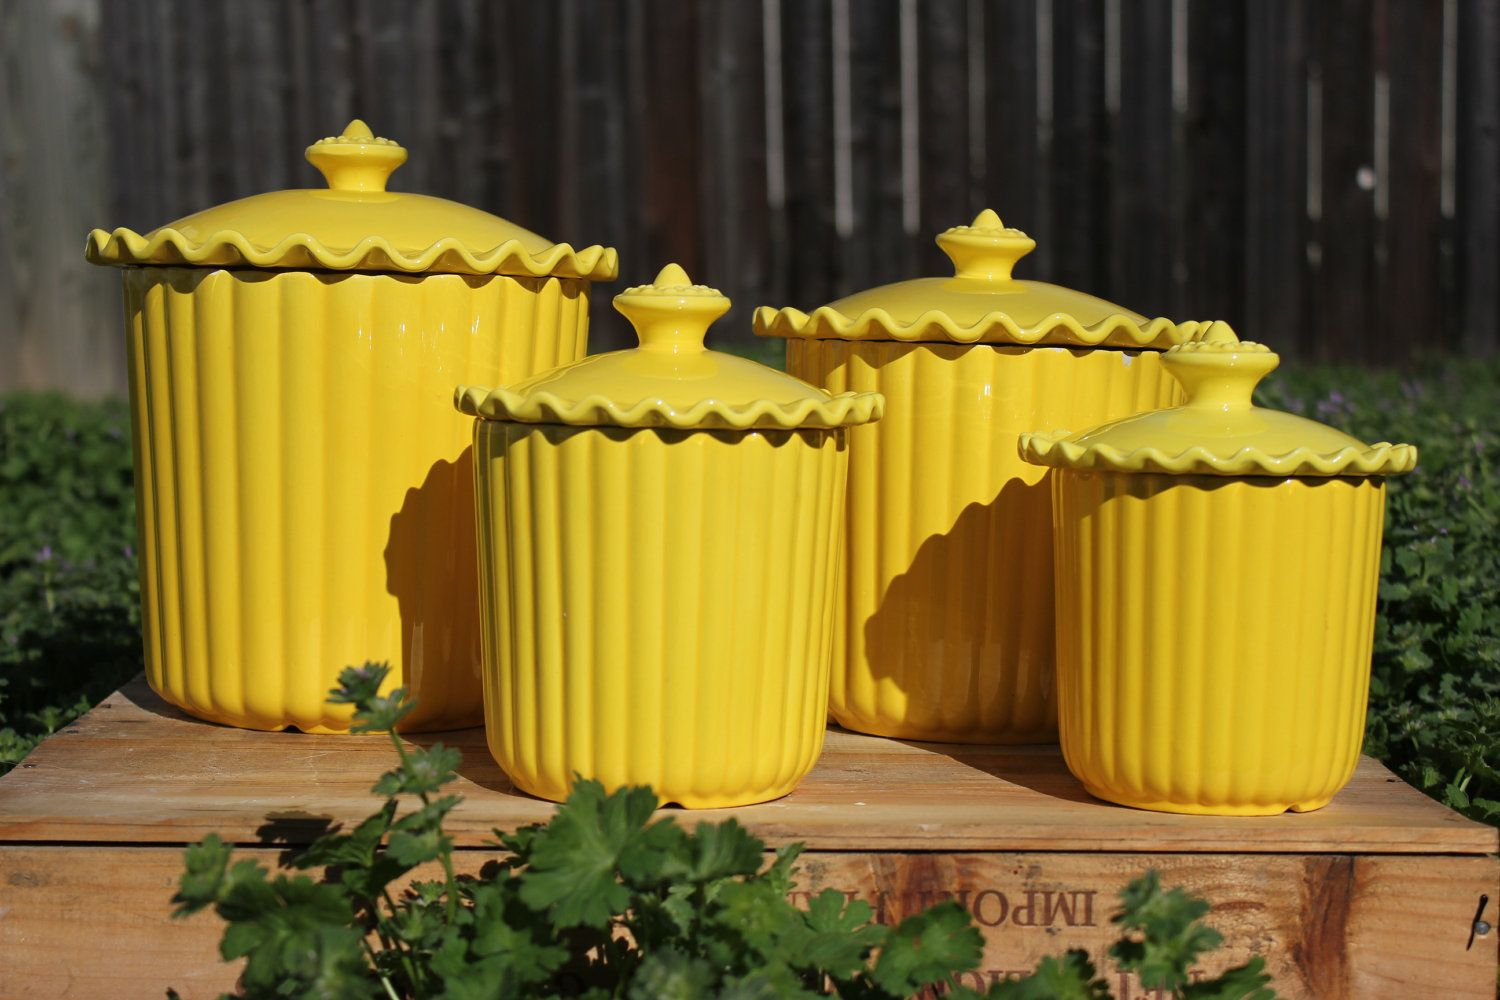 yellow kitchen | Cheery Yellow Ceramic Kitchen Canisters Set ... on shelves for kitchen ideas, wall art for kitchen ideas, stools for kitchen ideas, lights for kitchen ideas, decorations for kitchen ideas,